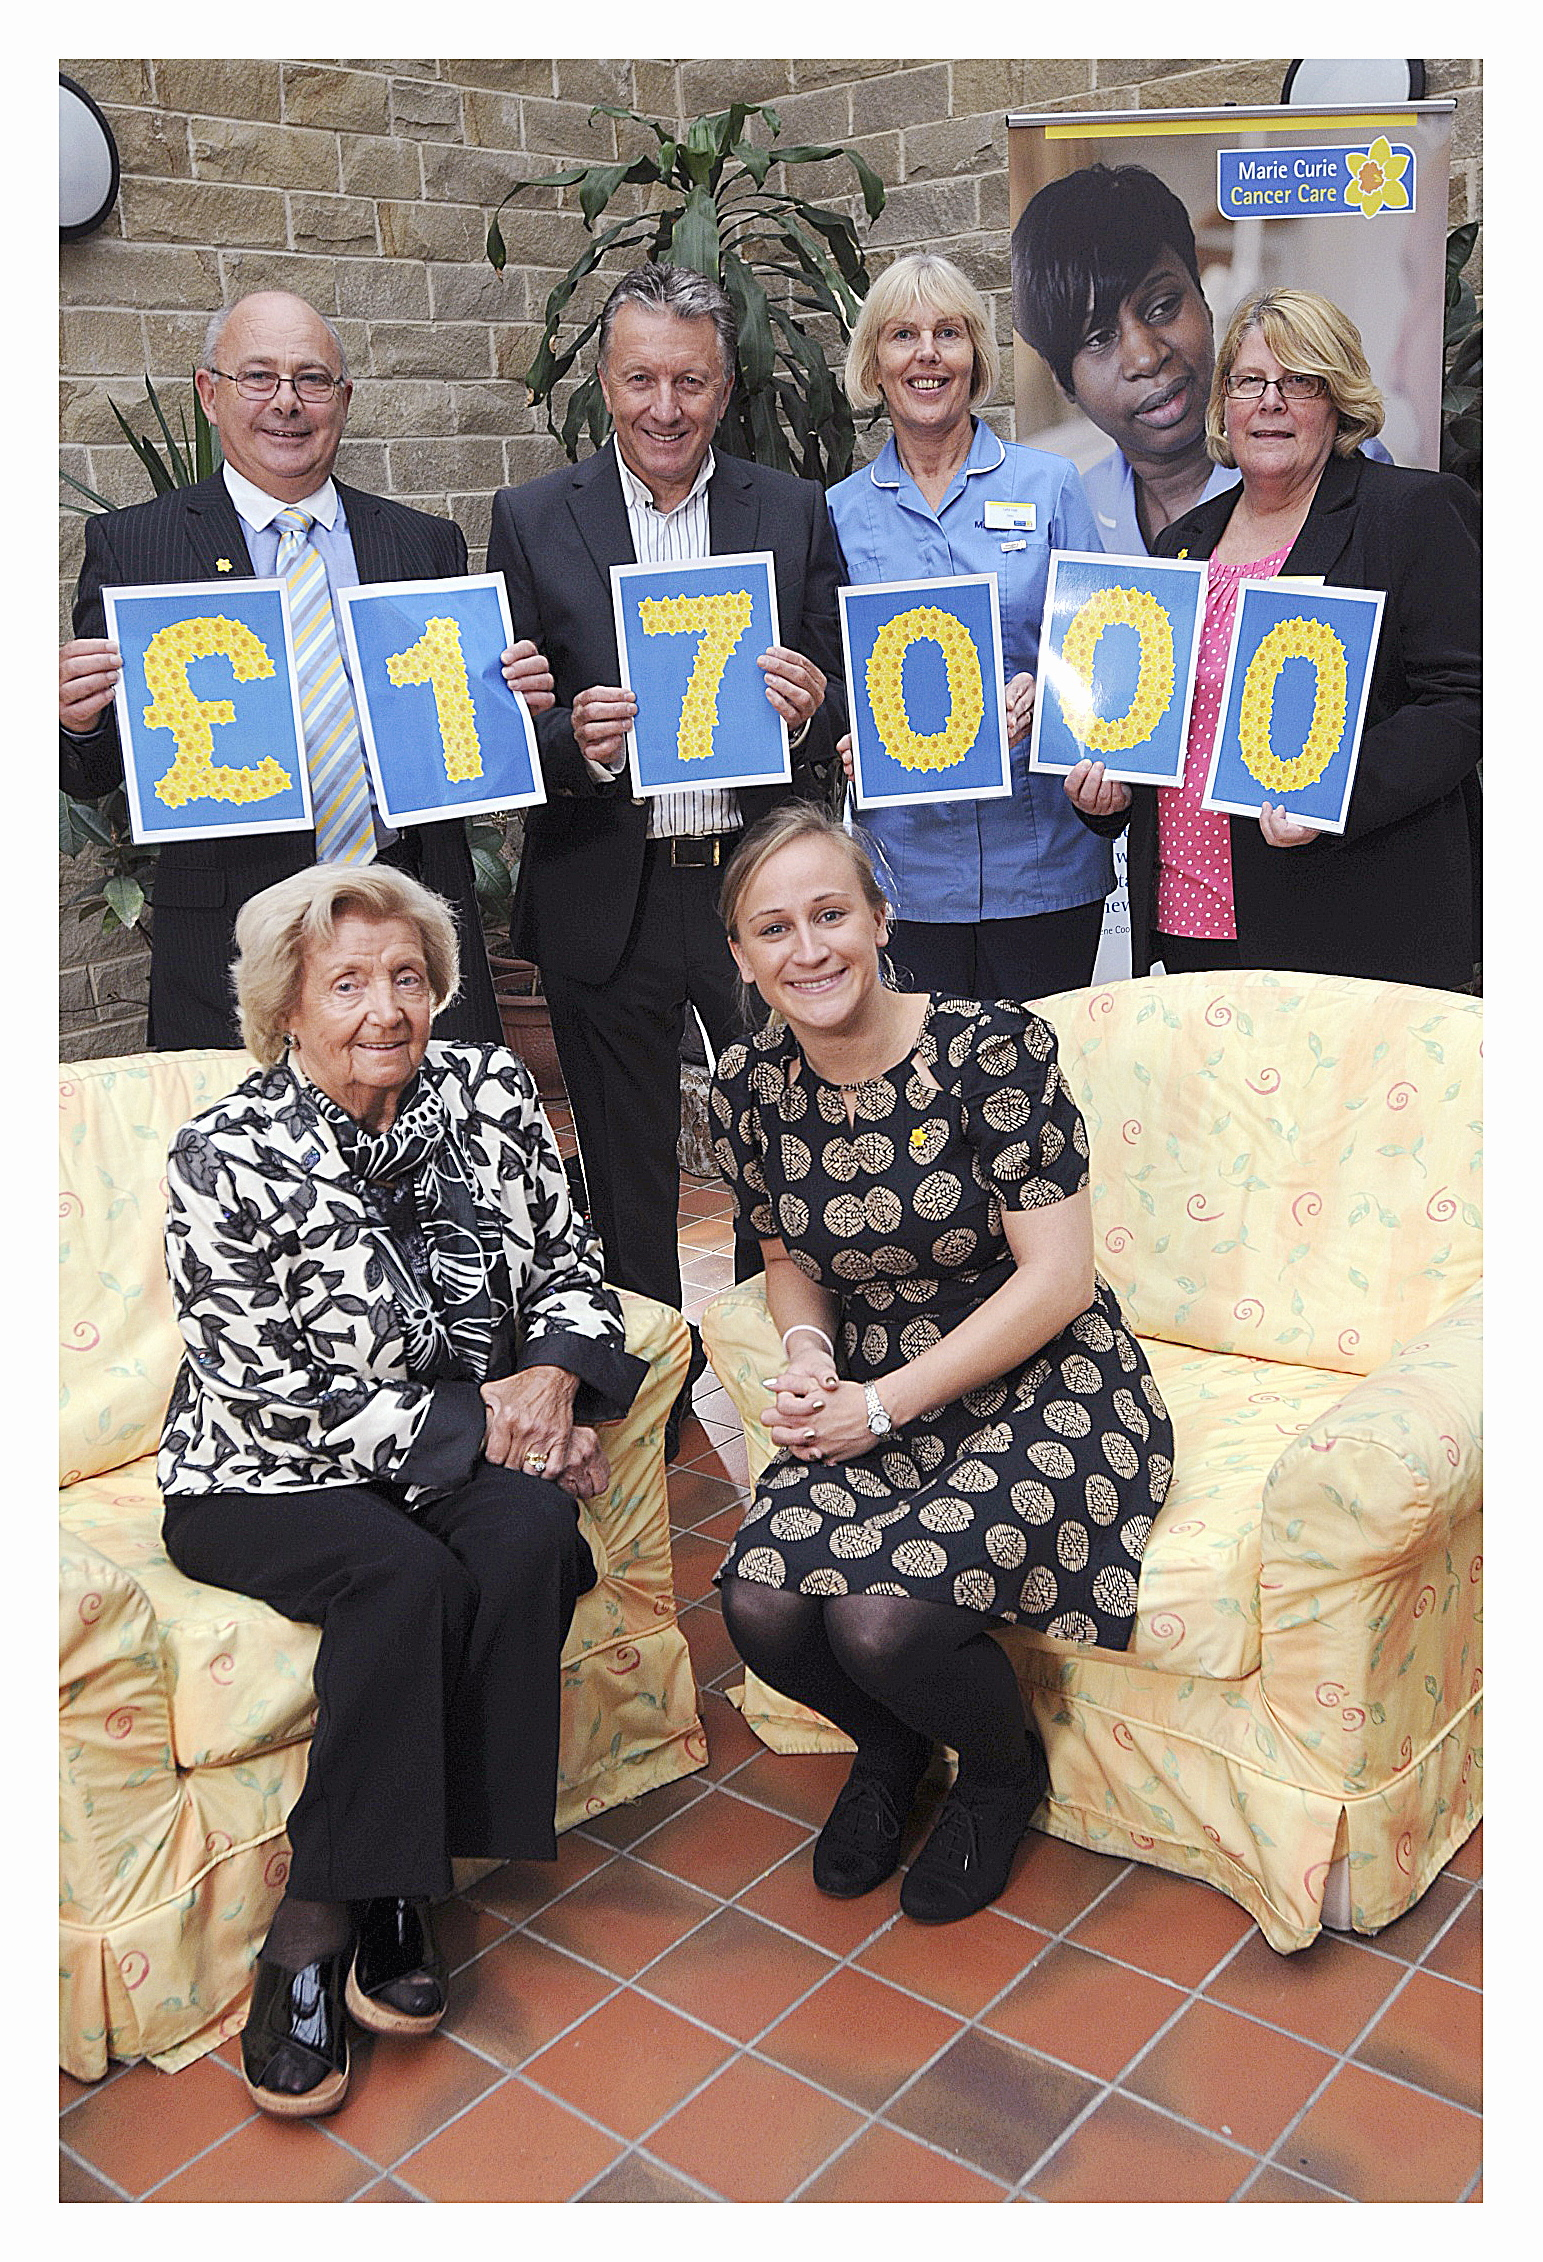 At the launch are (back, from left  Brian Curran, Poundworld boss Chris Edwards, Marie Curie nurse Lydia Lepp, hospice manager Elaine Hill and (front) Alice Edwards and Joanna Hancock